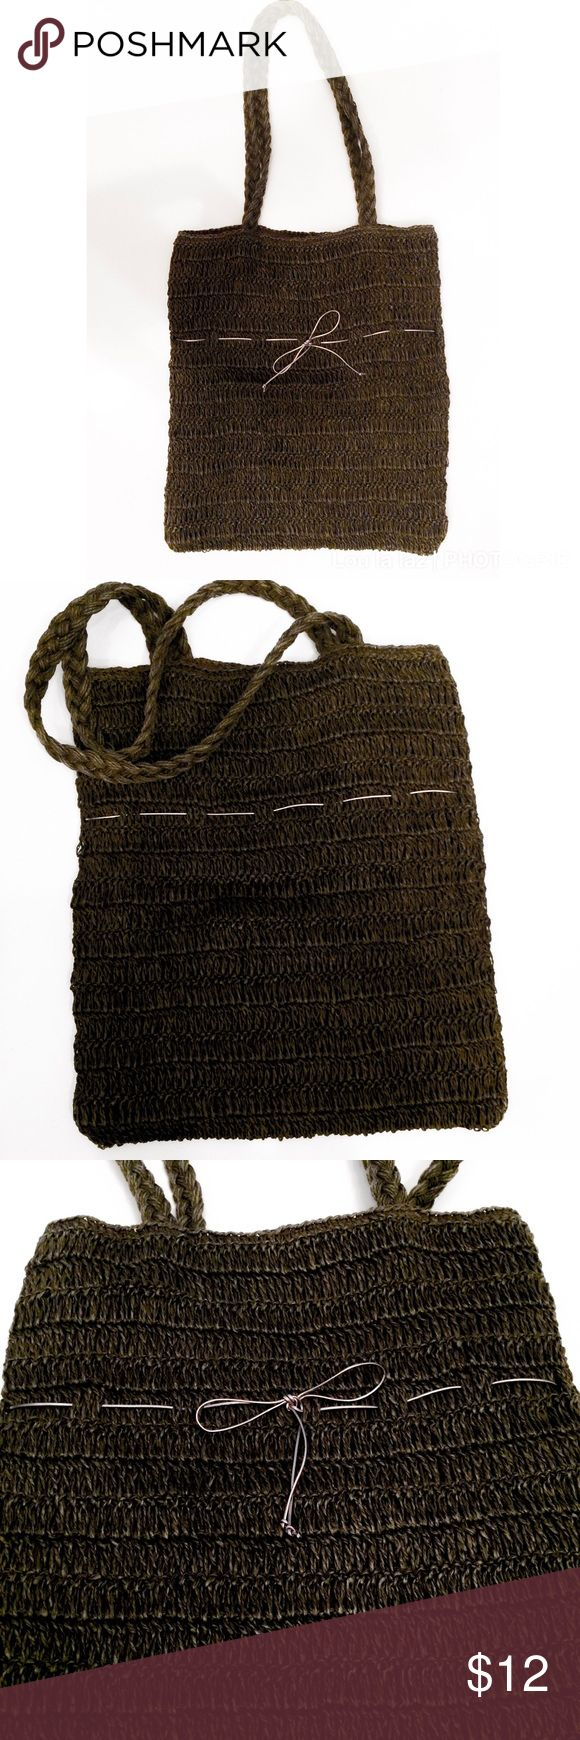 "Gap tote bag Brownish gray woven bohemian/vintage tote by Gap. 16"" tall by 14"" wide with 12"" shoulder strap. One inside pocket with no closure. GAP Bags Totes"